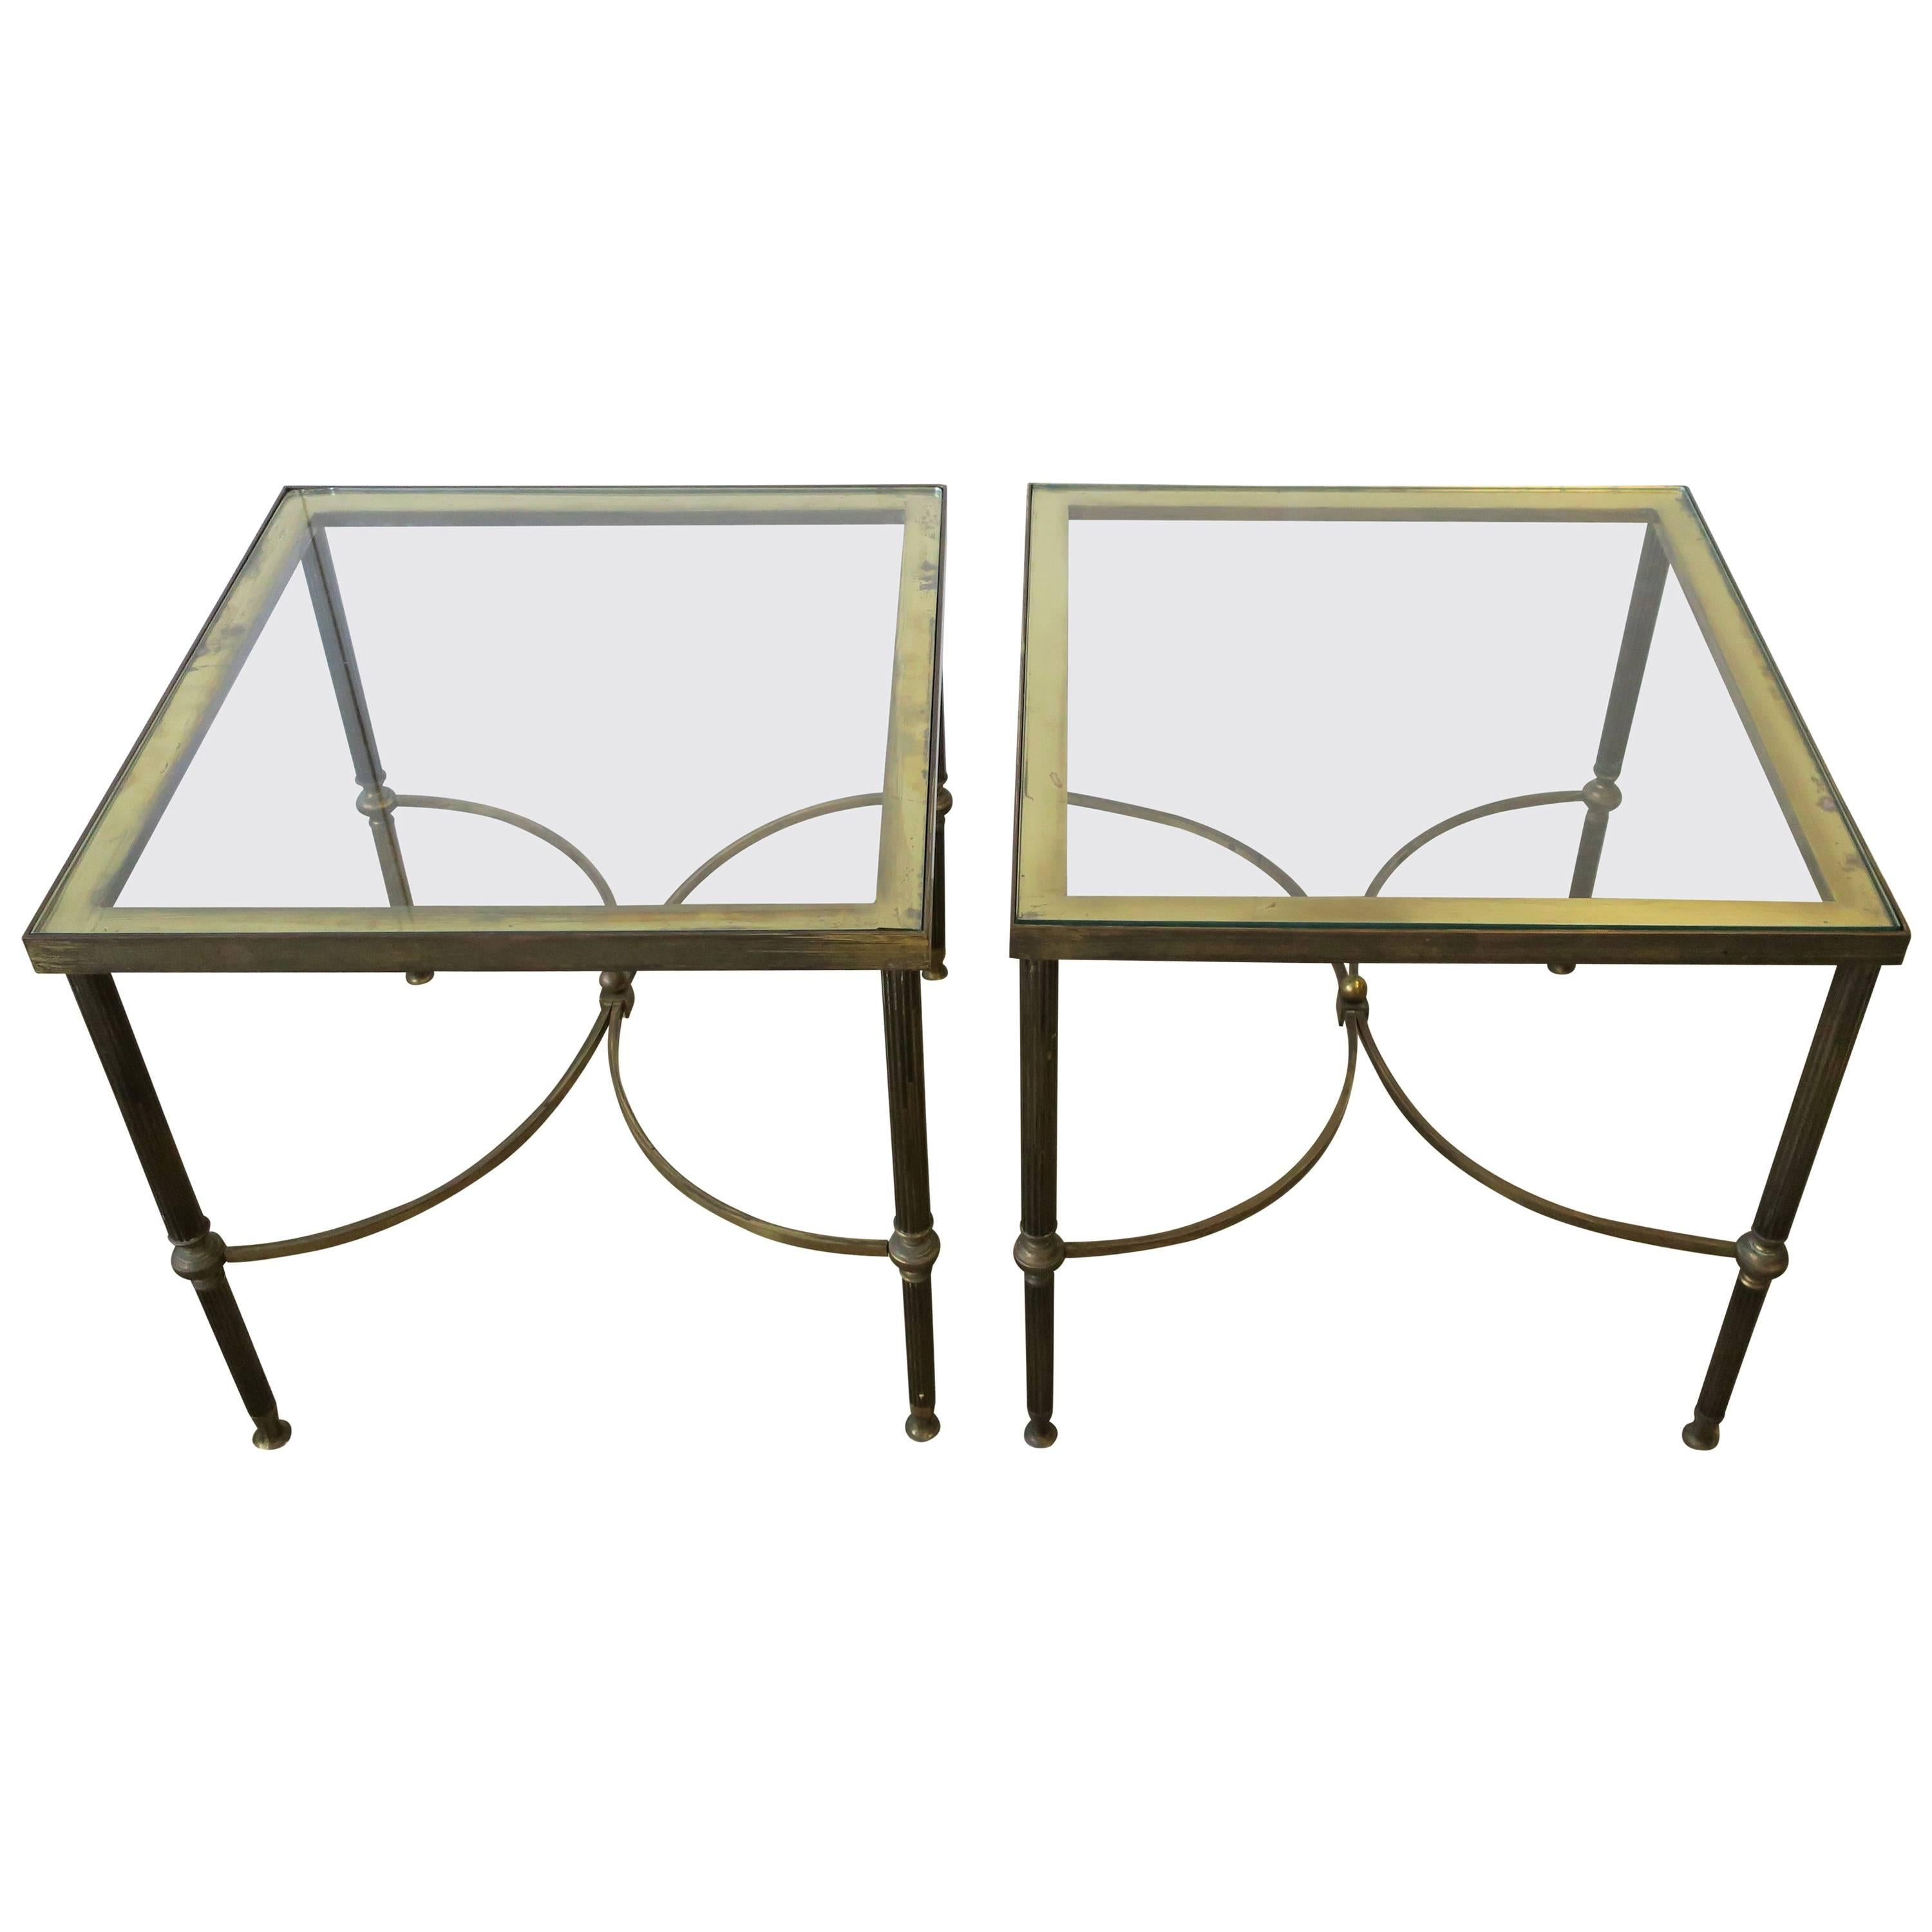 Brass and Glass End Tables after Maison Jansen, Pair